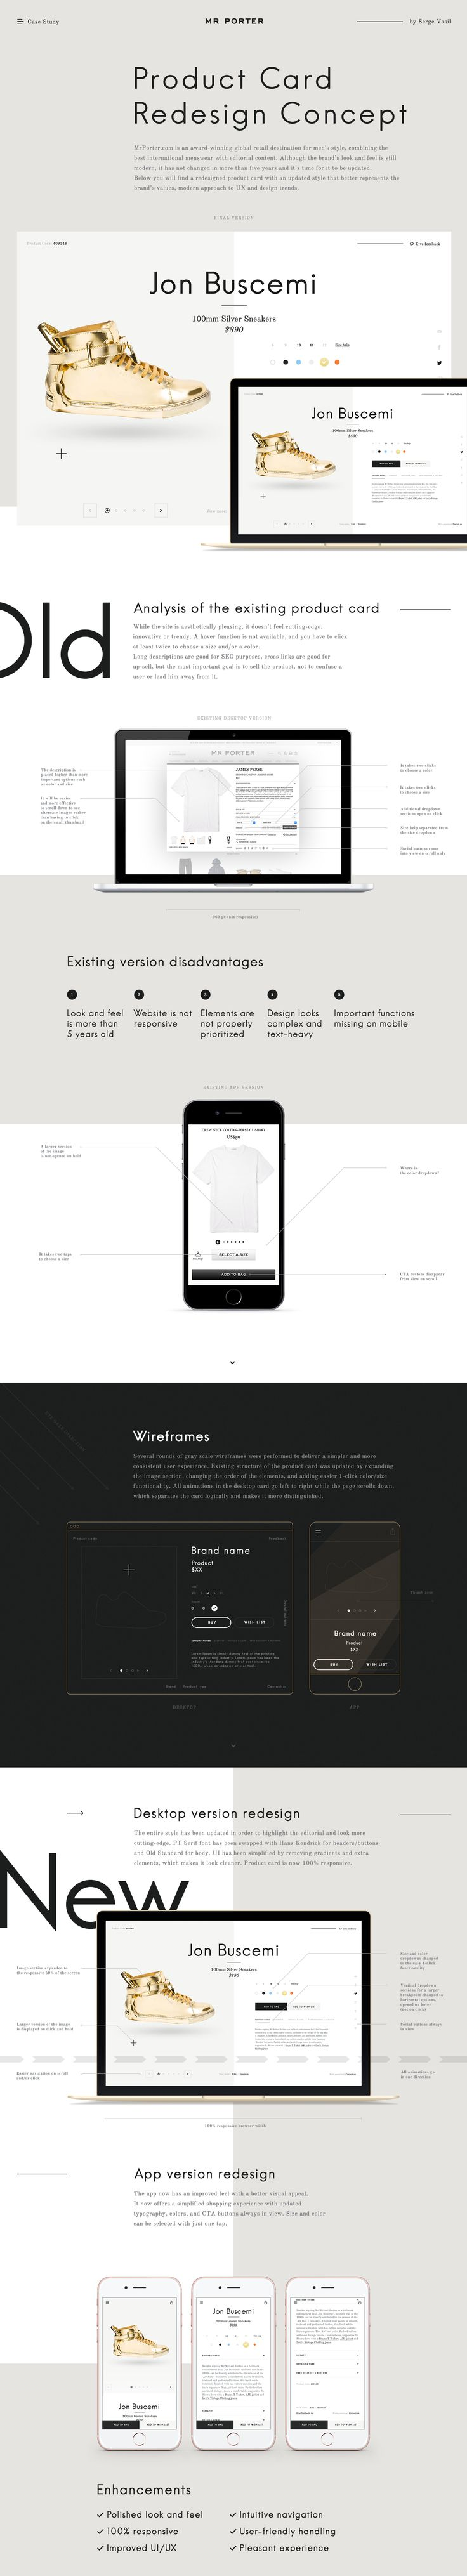 I came up with a case study describing the process behind the redesign of the desktop and mobile versions of the MRPORTER's product card. It will be relevant for those who design for Ecommerce.